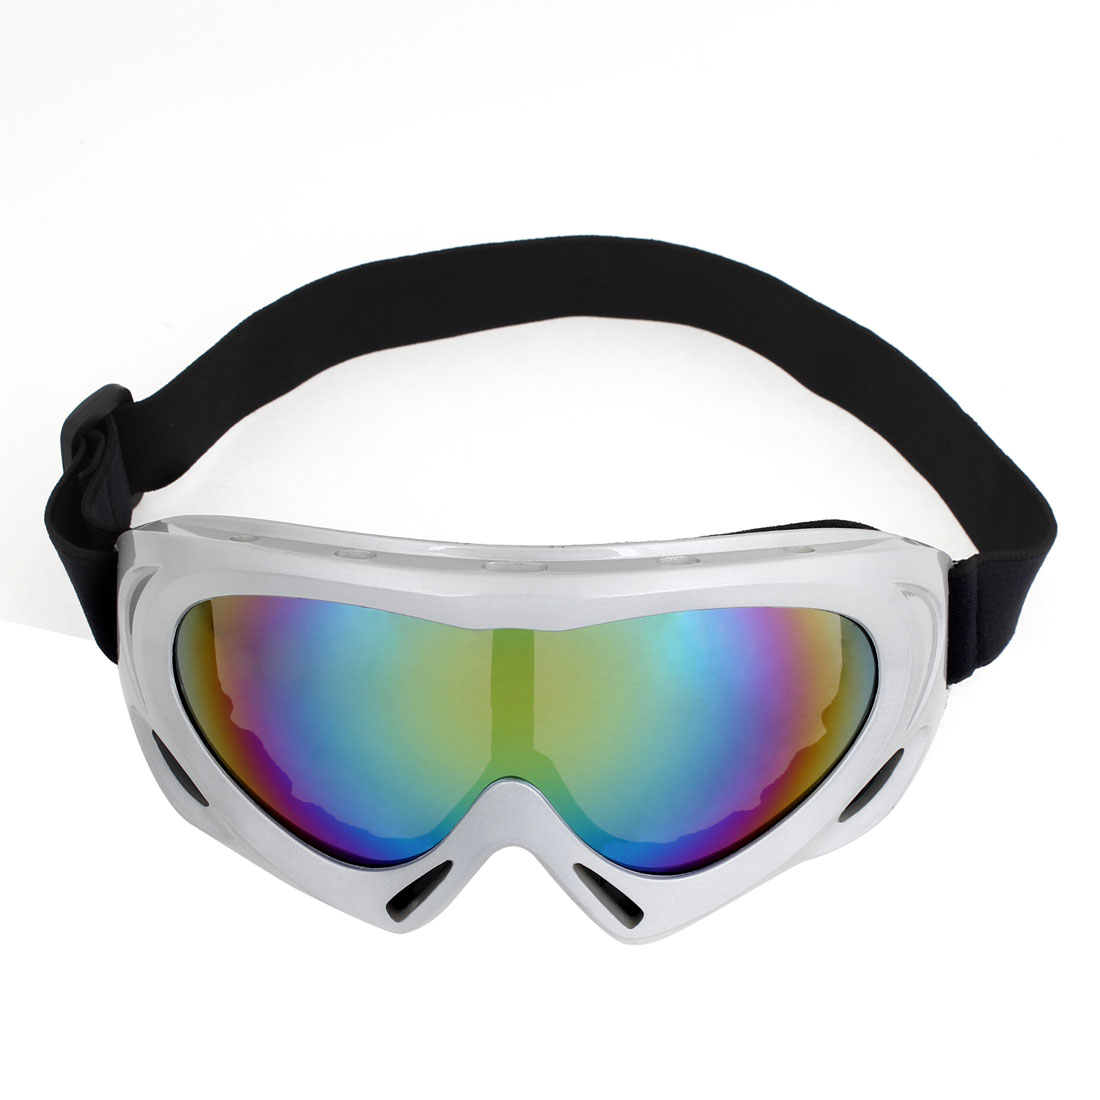 Unique Bargains Winter Sports Snowboard Ski Goggles Windproof Anti-UV Snow Glasses for Men Women by